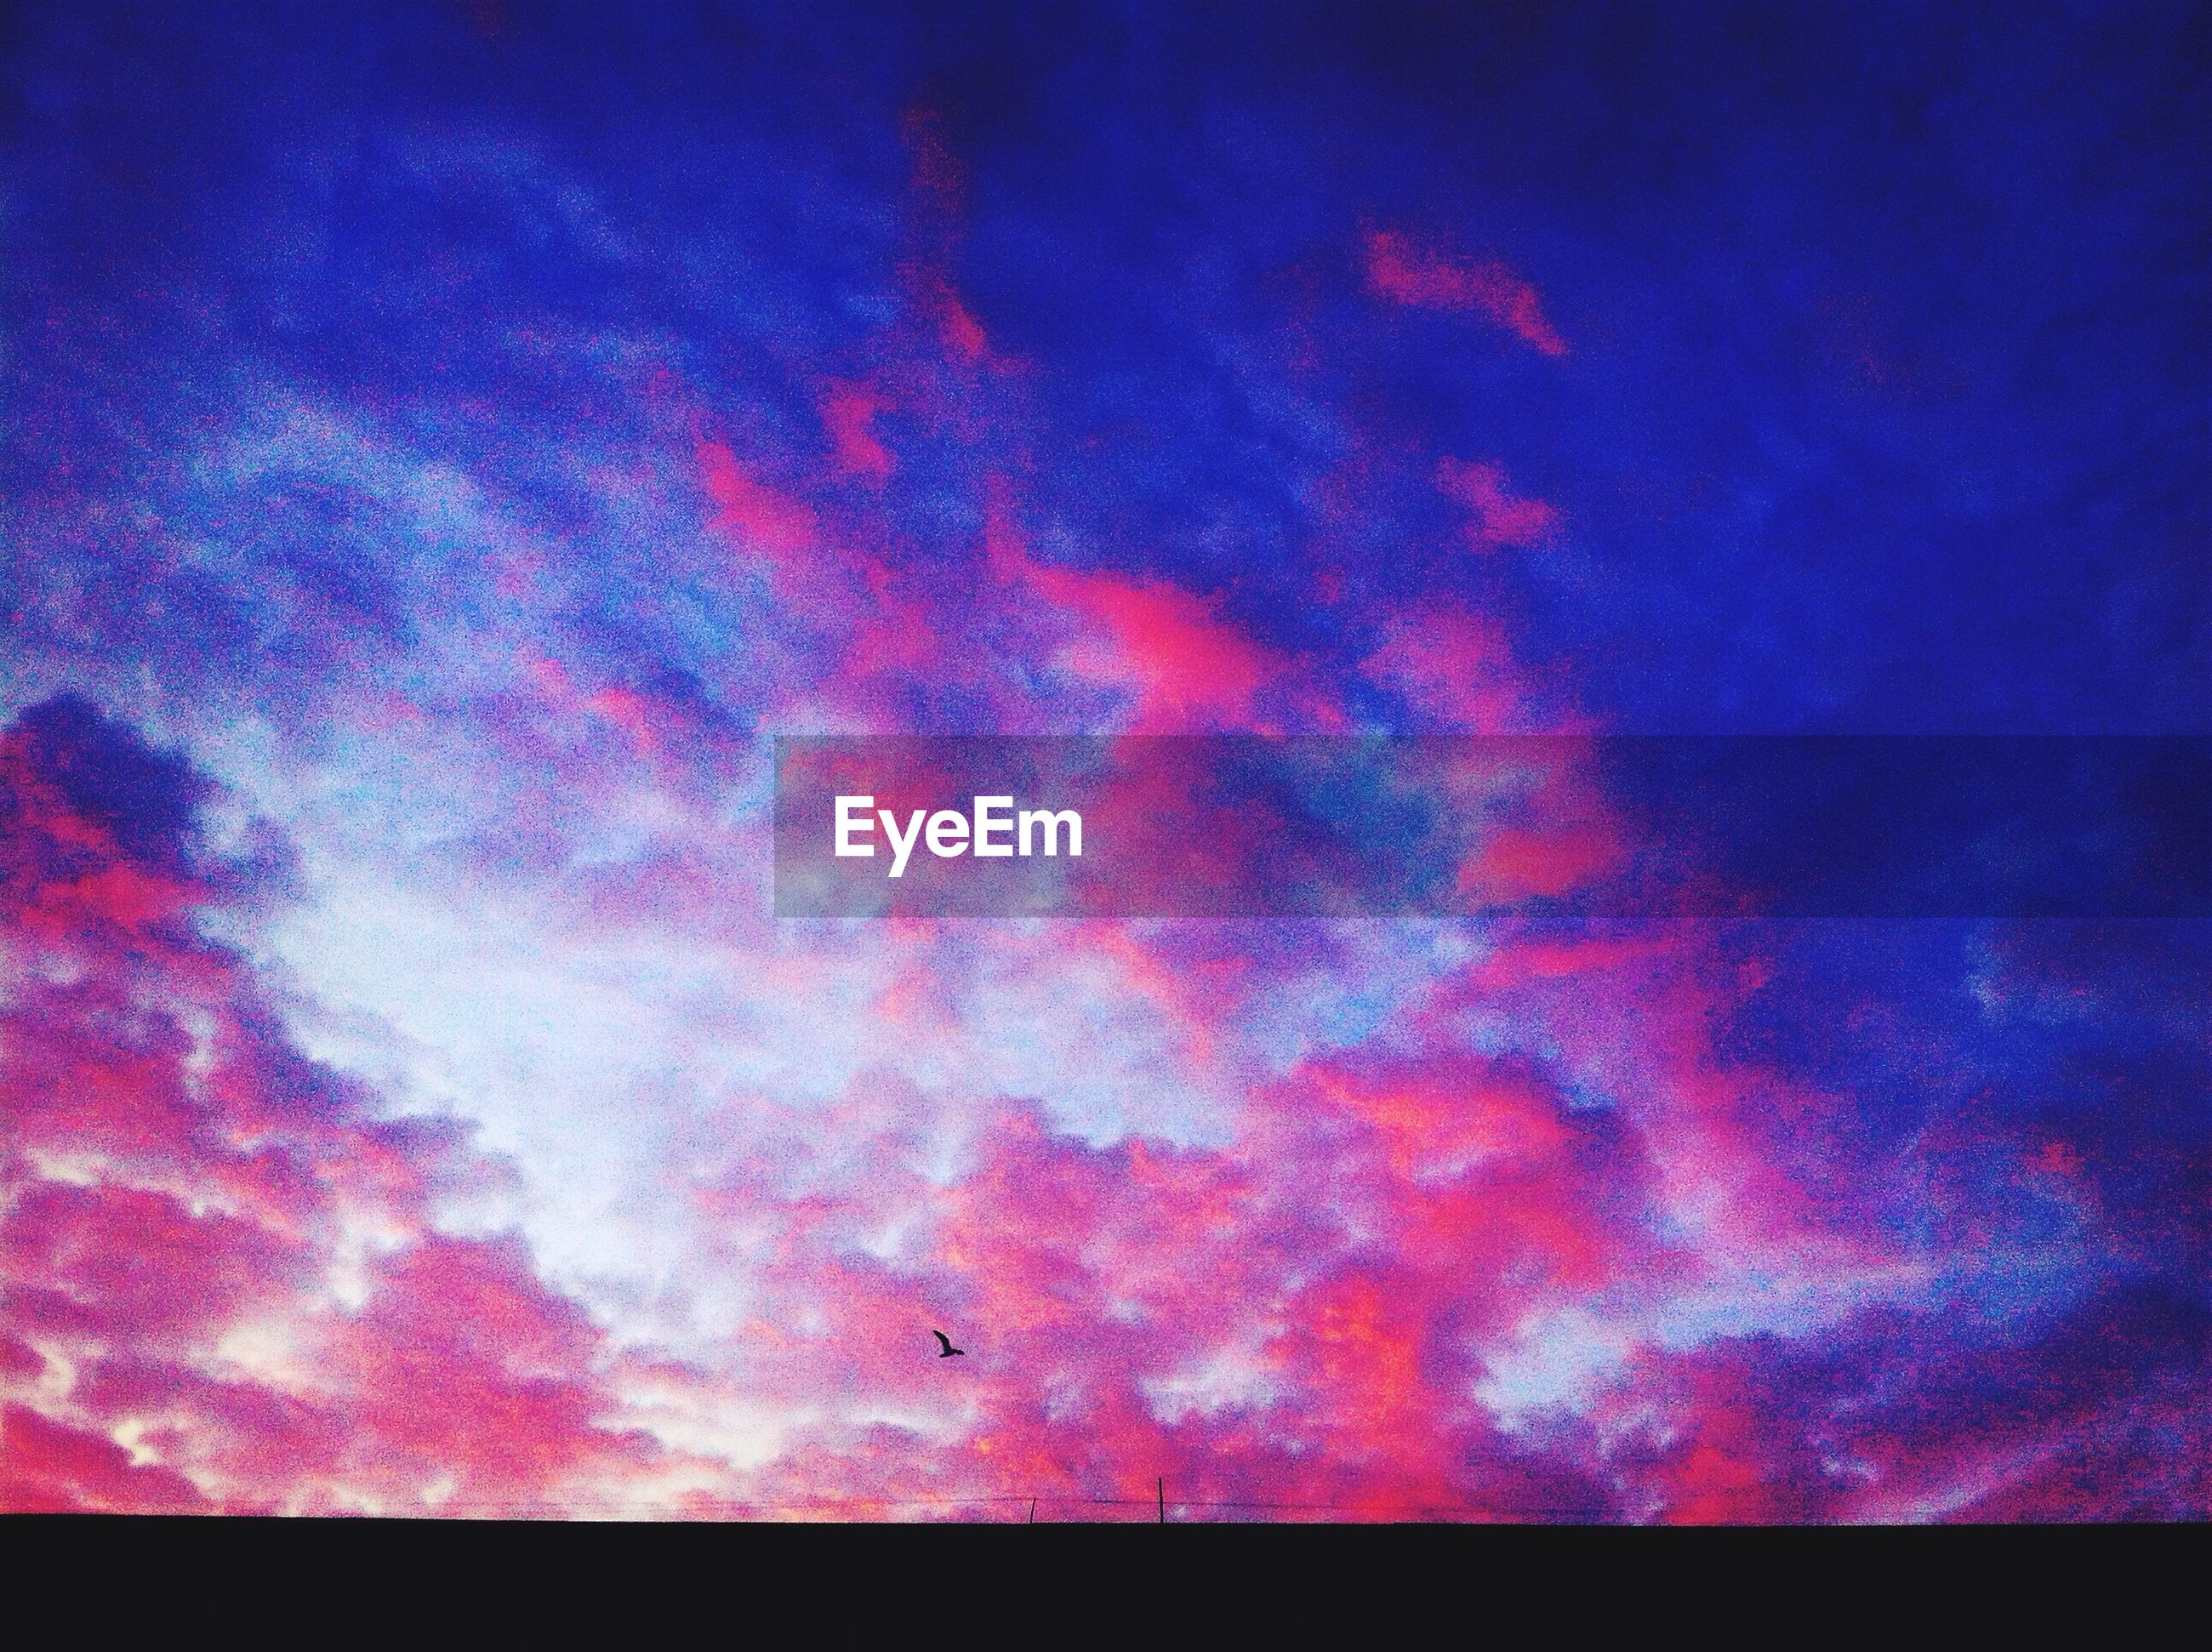 sky, beauty in nature, scenics, low angle view, cloud - sky, blue, tranquility, tranquil scene, nature, backgrounds, dramatic sky, sky only, idyllic, cloudy, full frame, majestic, night, purple, cloud, dusk